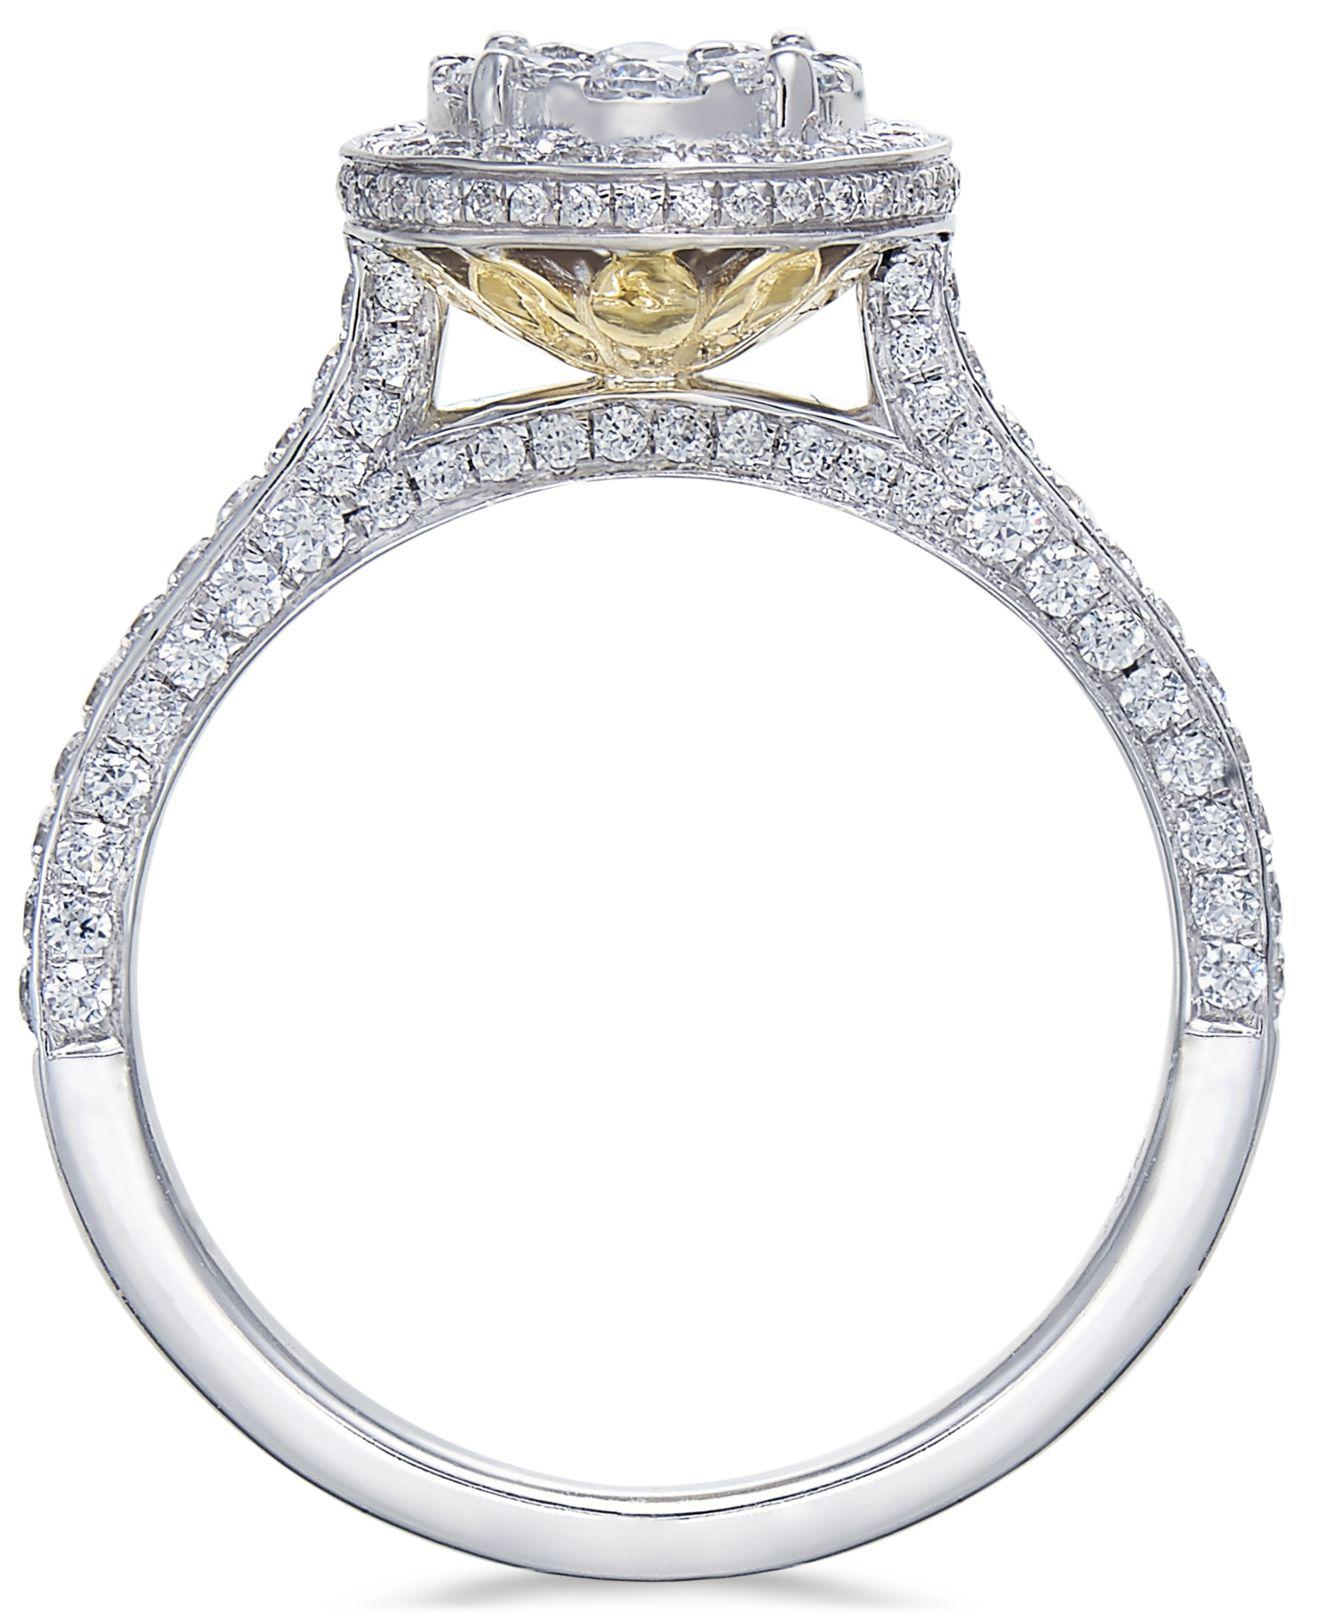 Macy s Diamond Cluster Bridal Set 1 1 2 Ct T w In 14k Gold And